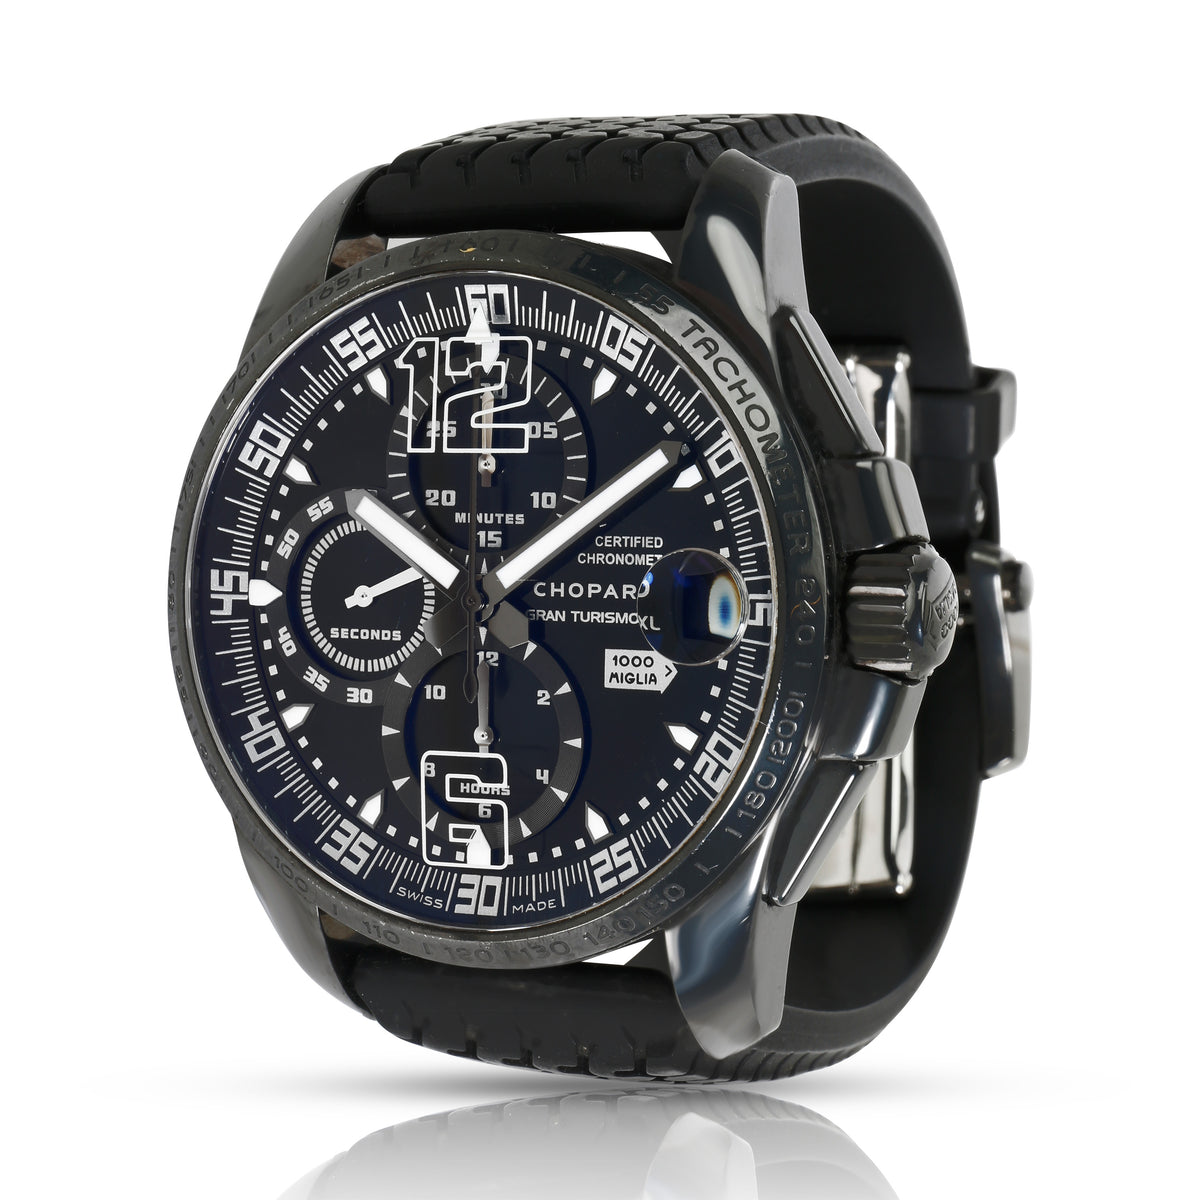 Chopard Gran Turismo XL Speed Black 3 8459 Men's Watch in  PVD